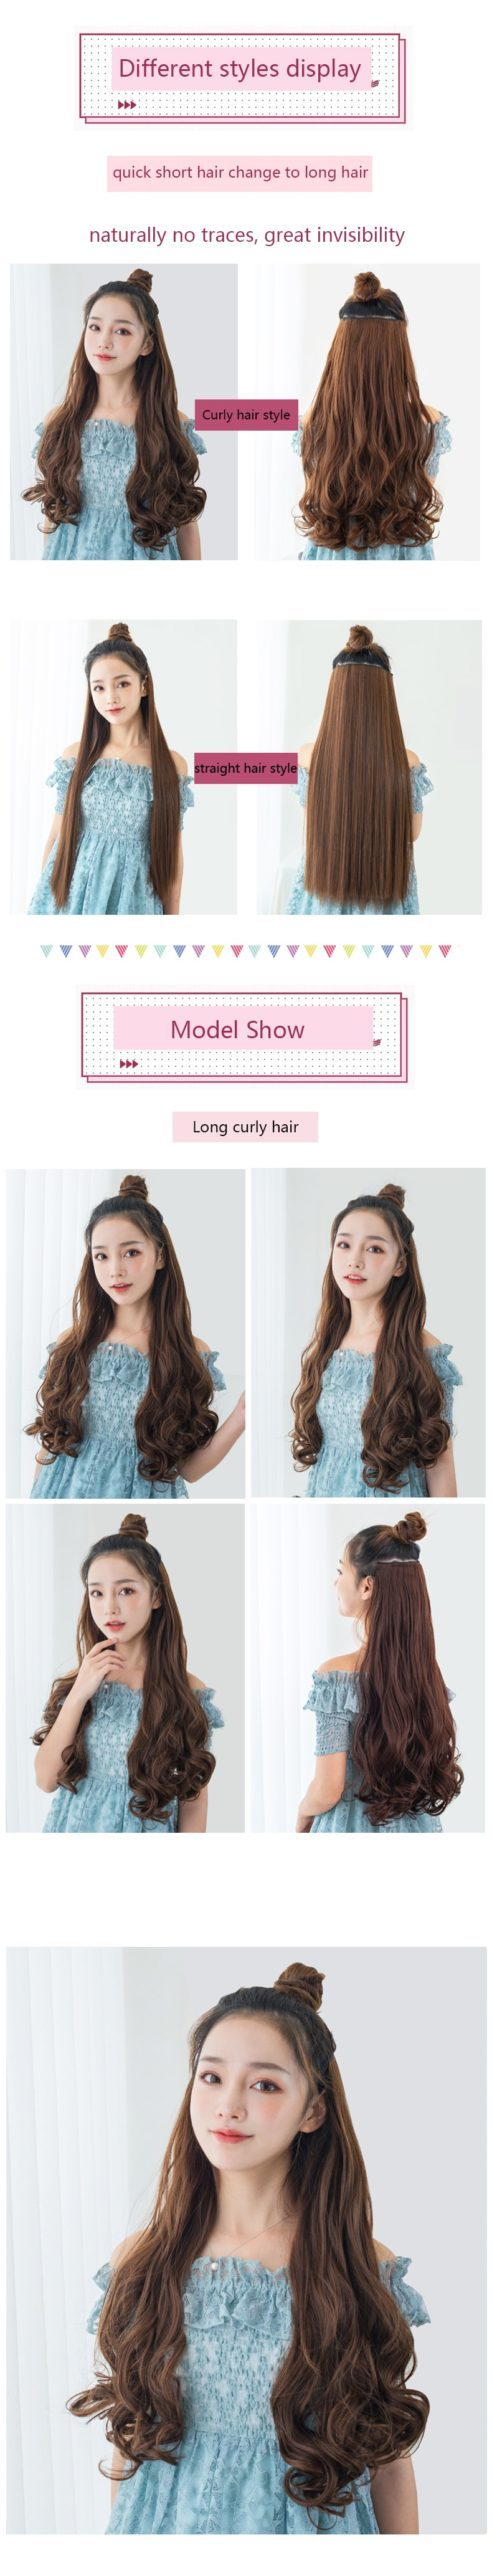 SHANGKE Straight Synthetic 24-Inch Clip in Hair Extensions Heat Resistant Wavy Hairpiece High Temperature Fiber False Hair